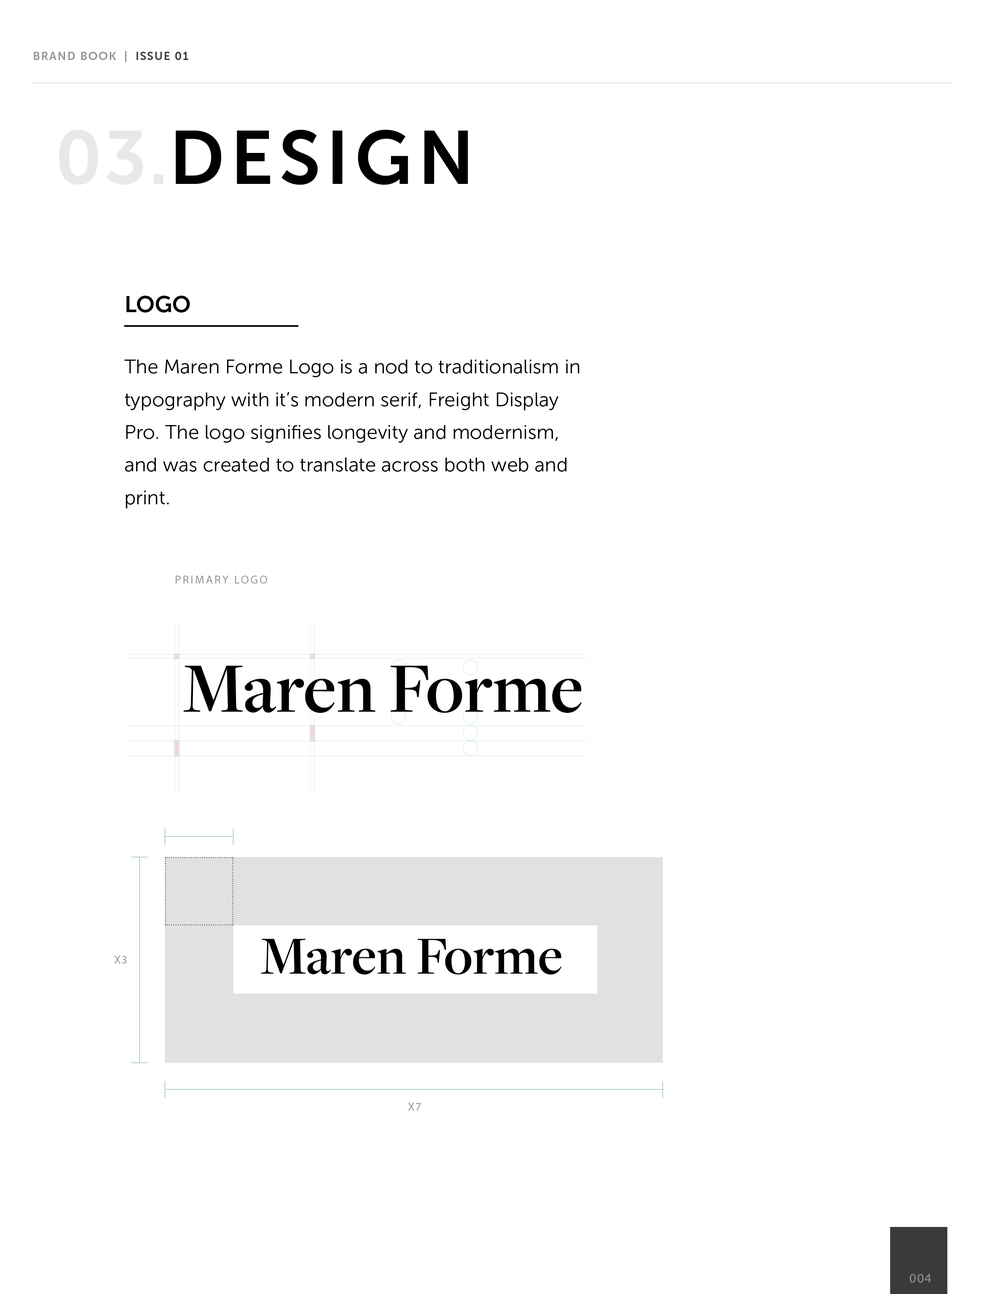 MARENFORME_PROJECTPROPOSAL_BRANDBOOK-03.png